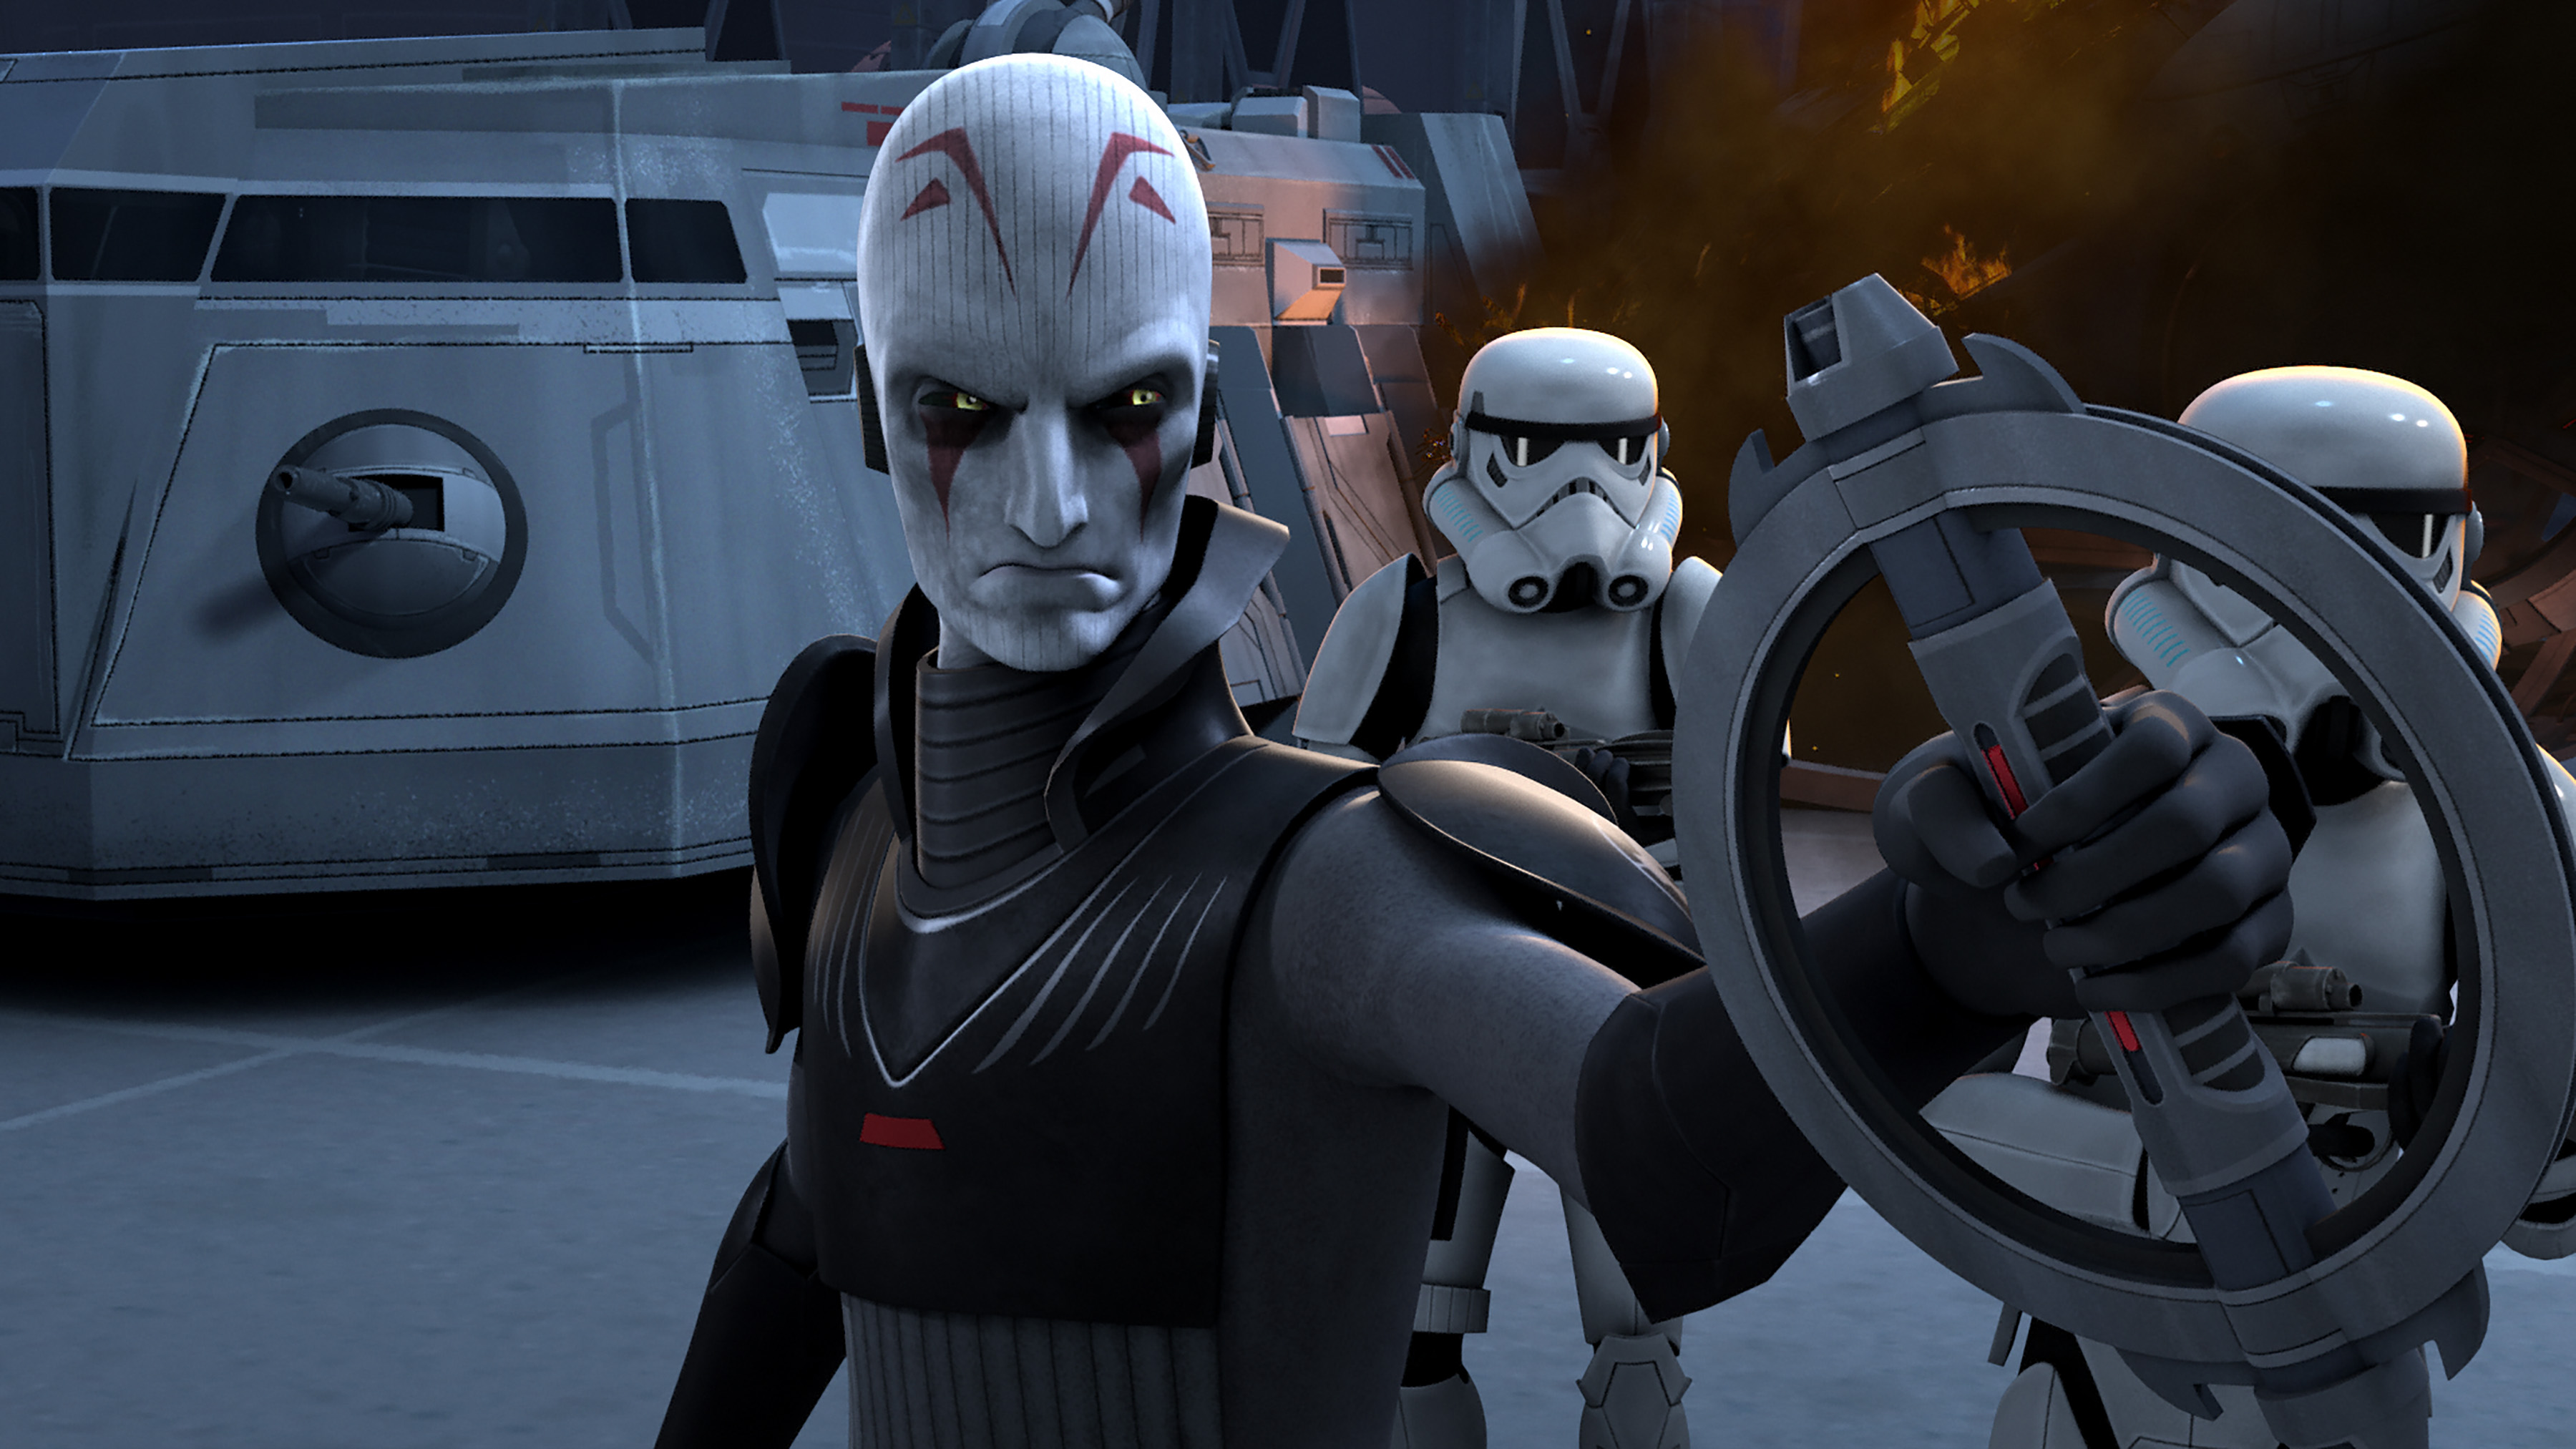 The upcoming star wars rebels will be a two-parter. the first part is